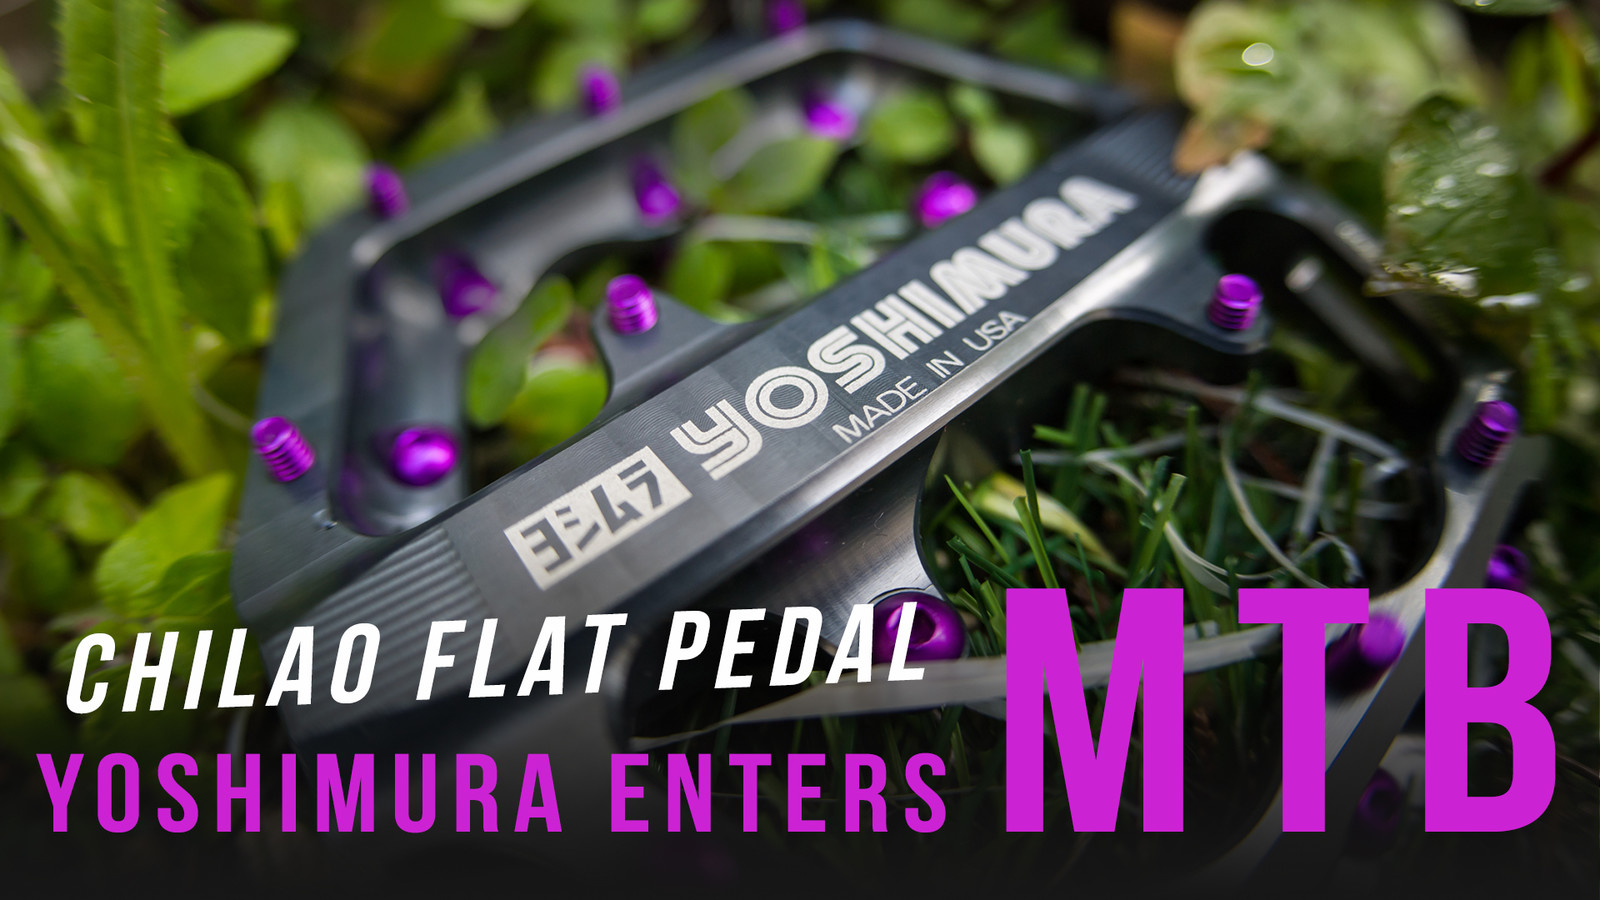 Yoshimura Enters MTB with the Chilao Flat Pedal